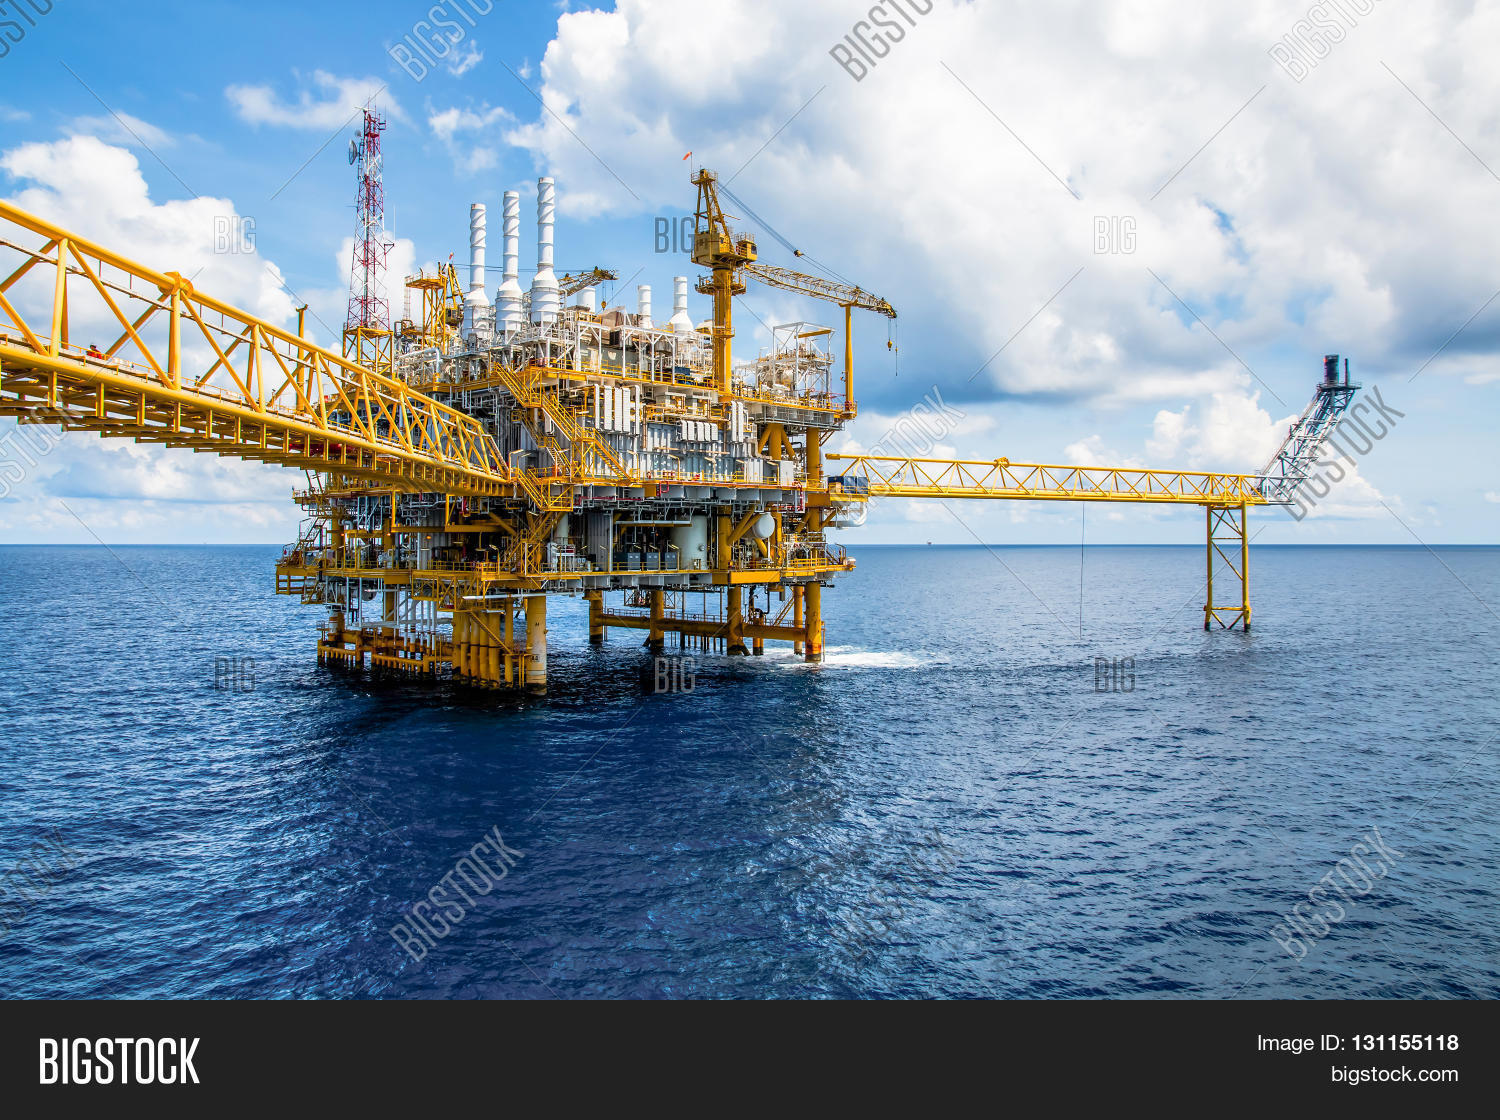 effects of oil and gas industry Negative secondary impacts from oil and gas importance or secondary significance as an issue for the oil and gas industry the effects on biodiversity from.